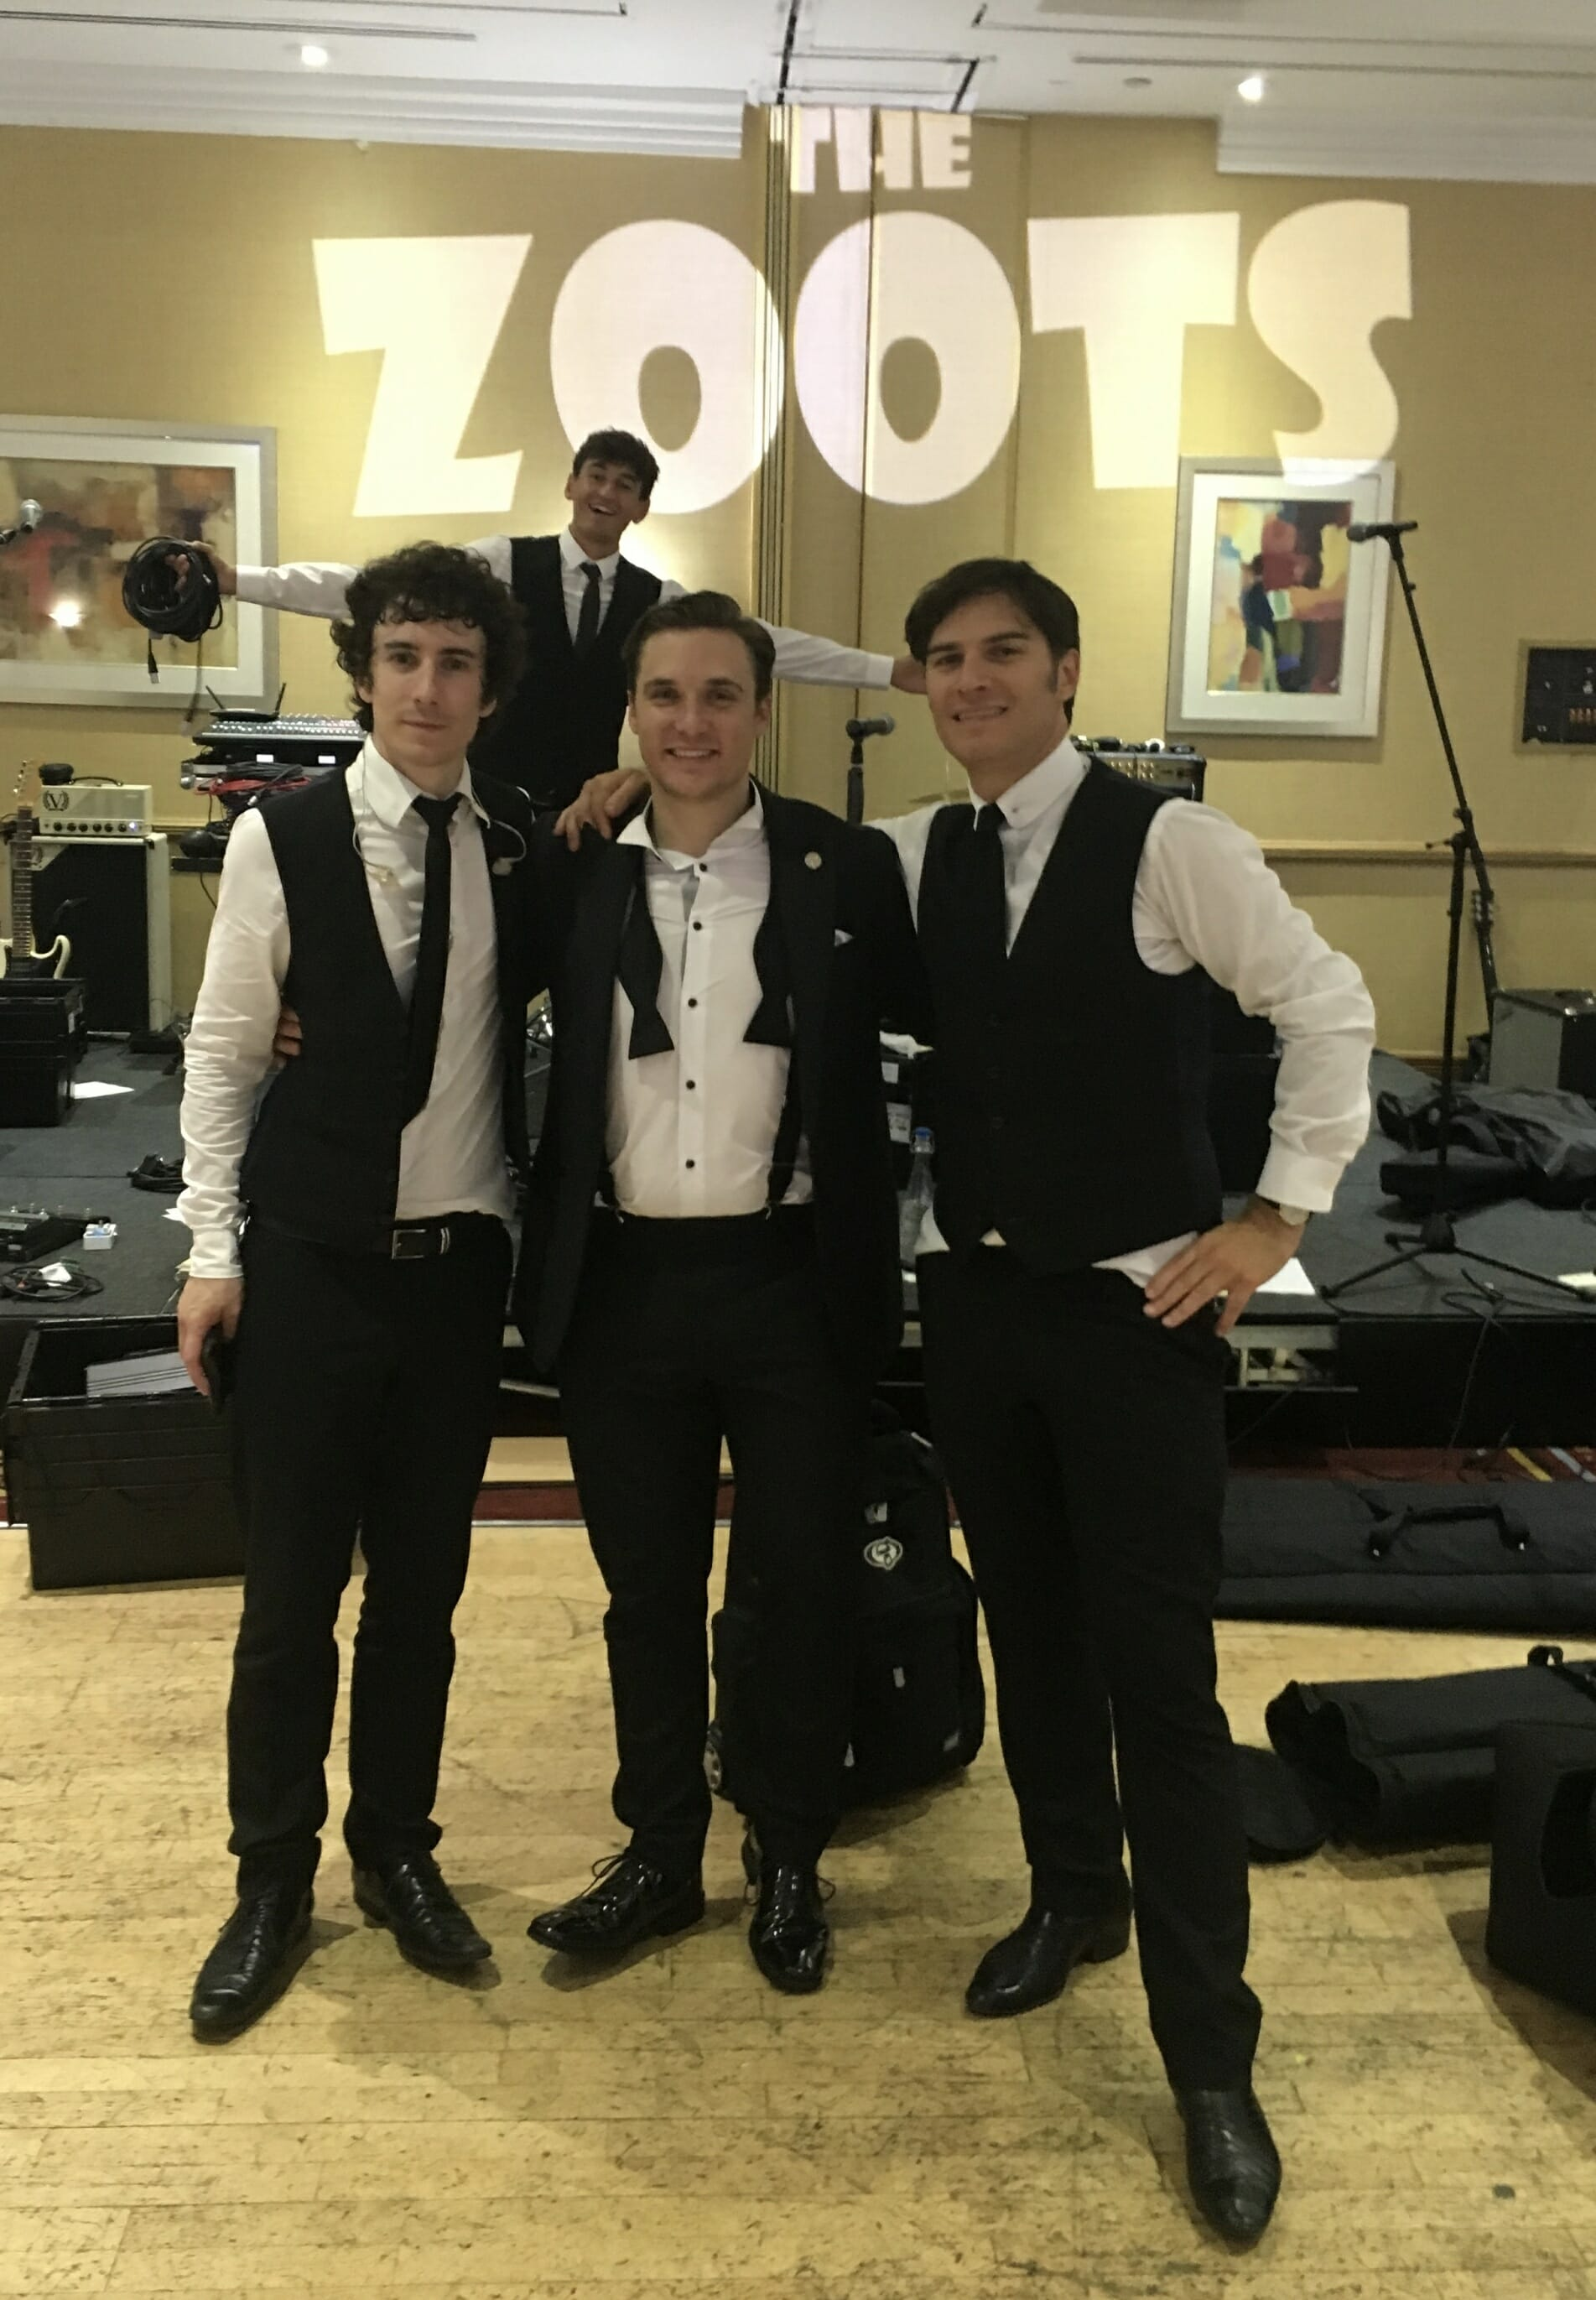 The Zoots, Band in Swindon, Band in South West, Rotary Club band, Swindon Rotary Club, Swindon Phoenix Rotary, Wiltshire Wedding band, Band in Wiltshire, Wedding band Wiltshire, Party band Wiltshire, Wedding band Swindon, Band Marriott Swindon,